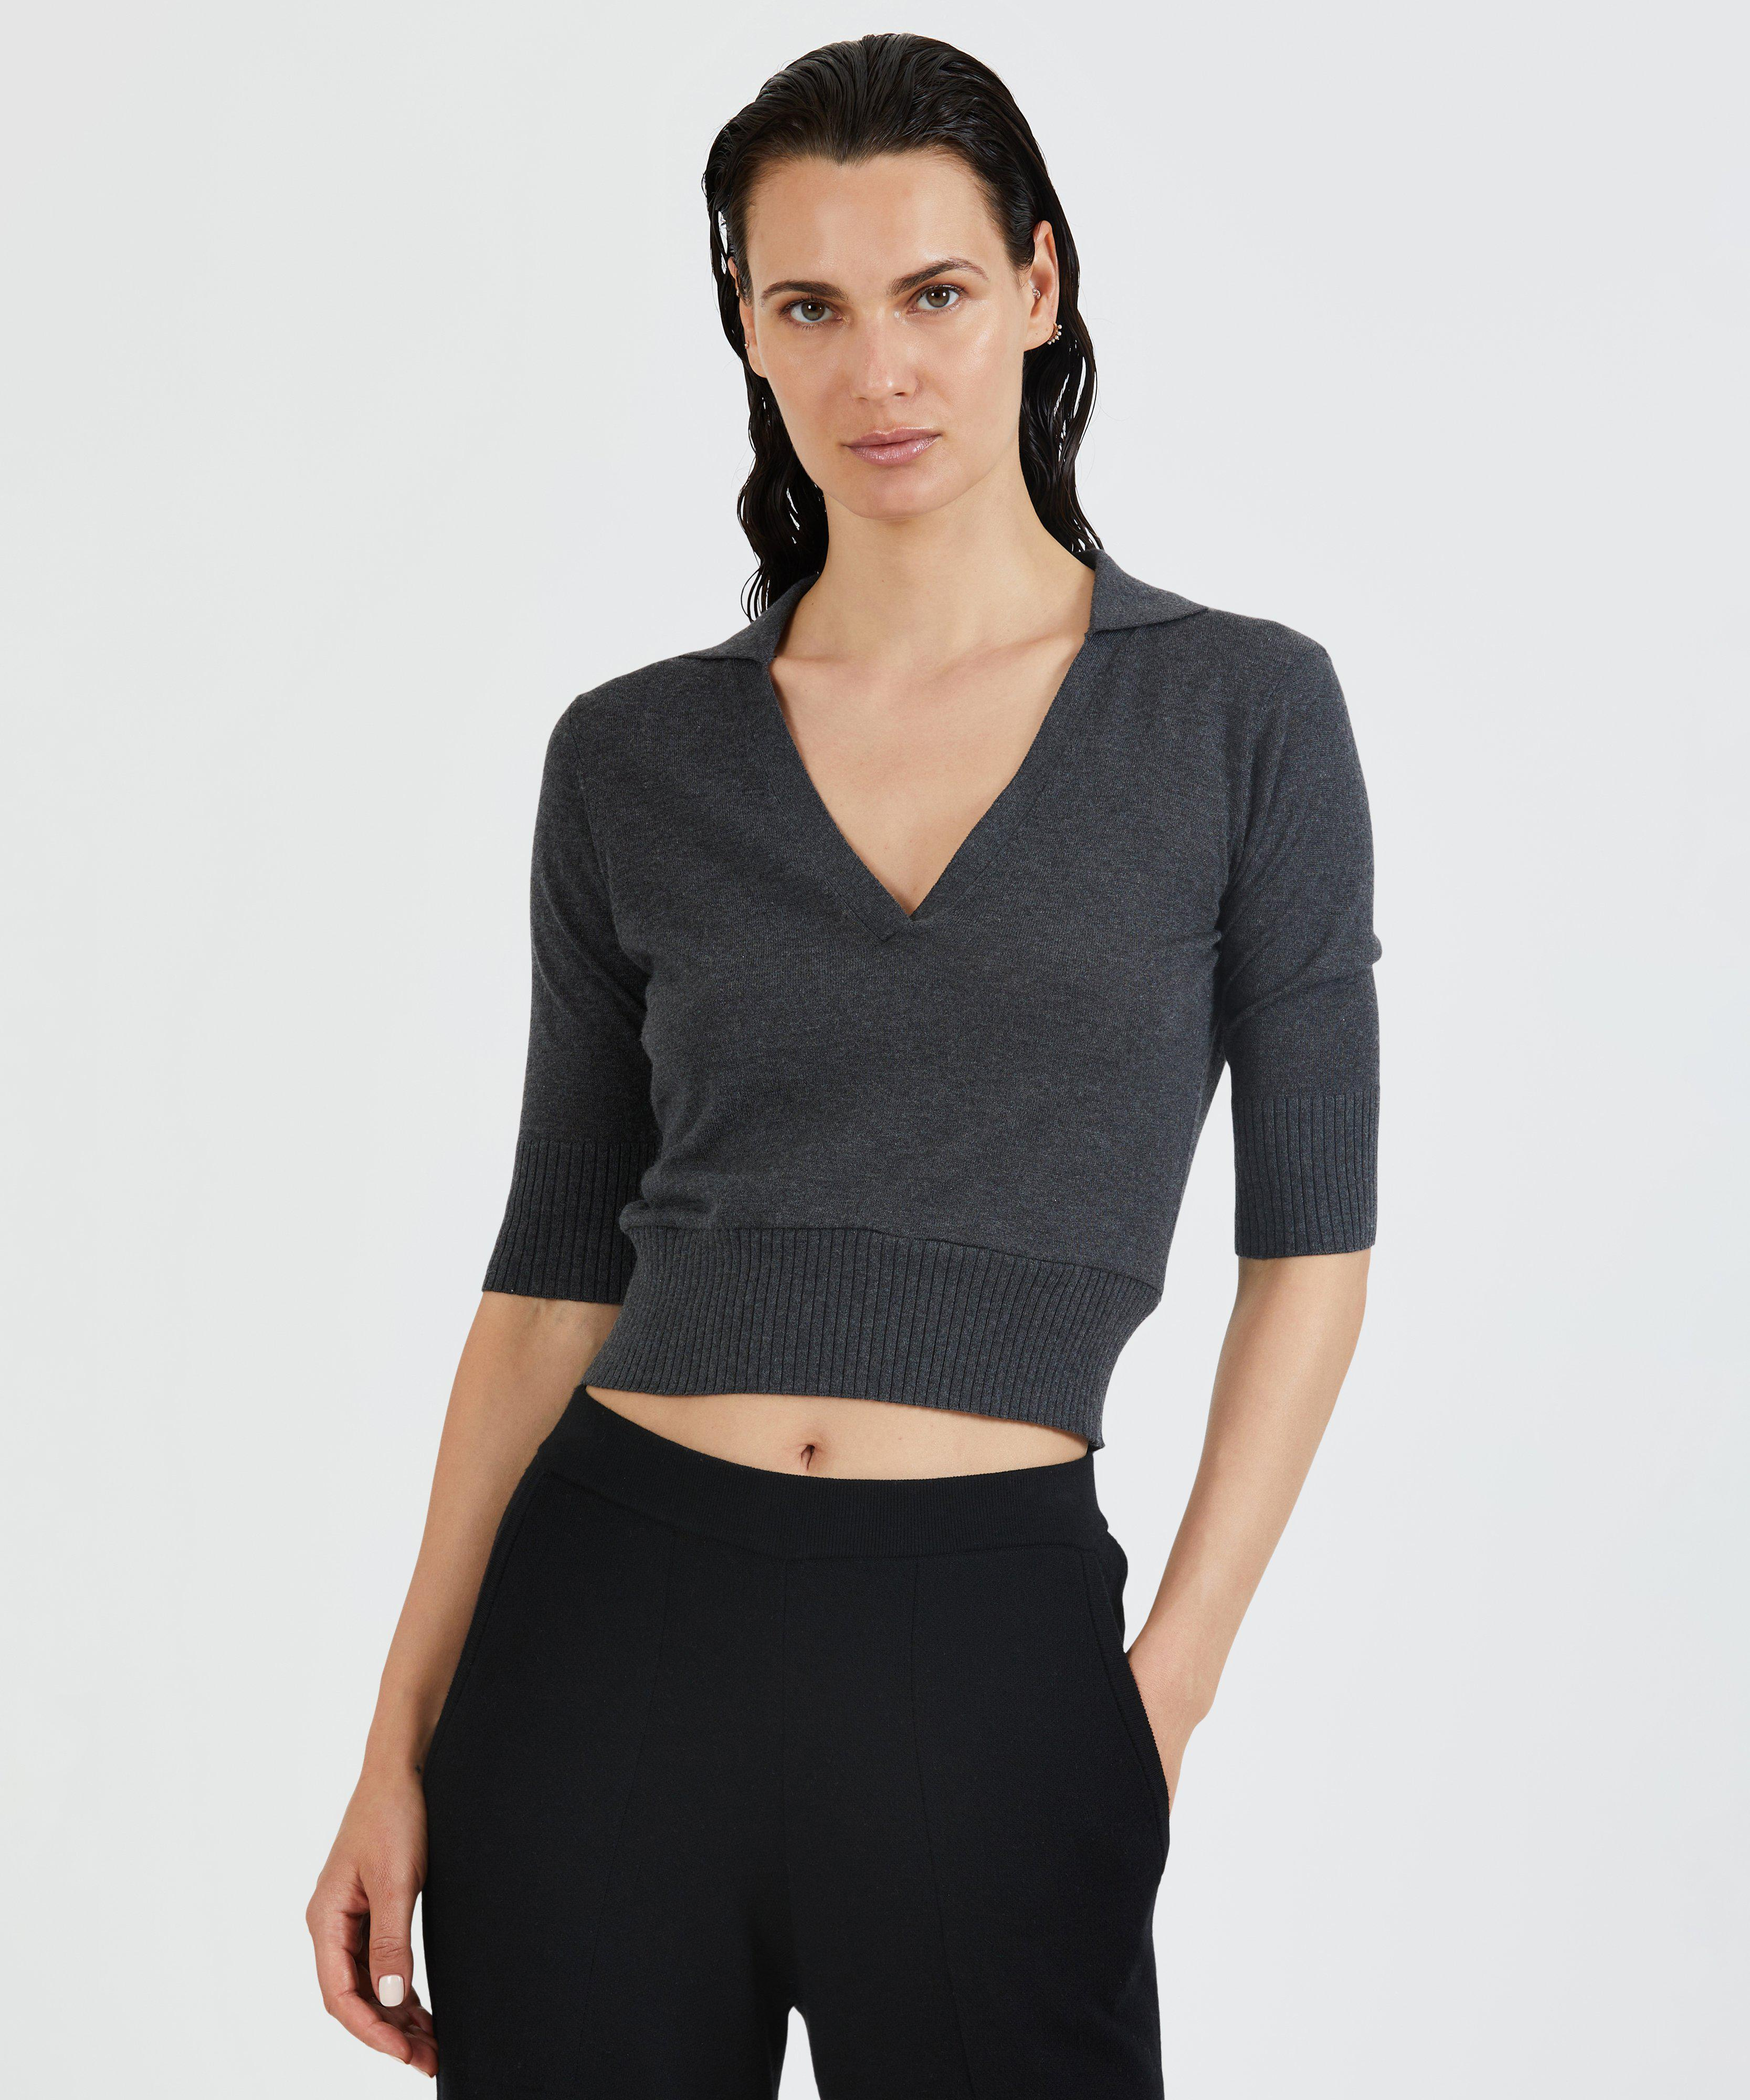 Silk Blend Short Sleeve Polo Sweater - Charcoal